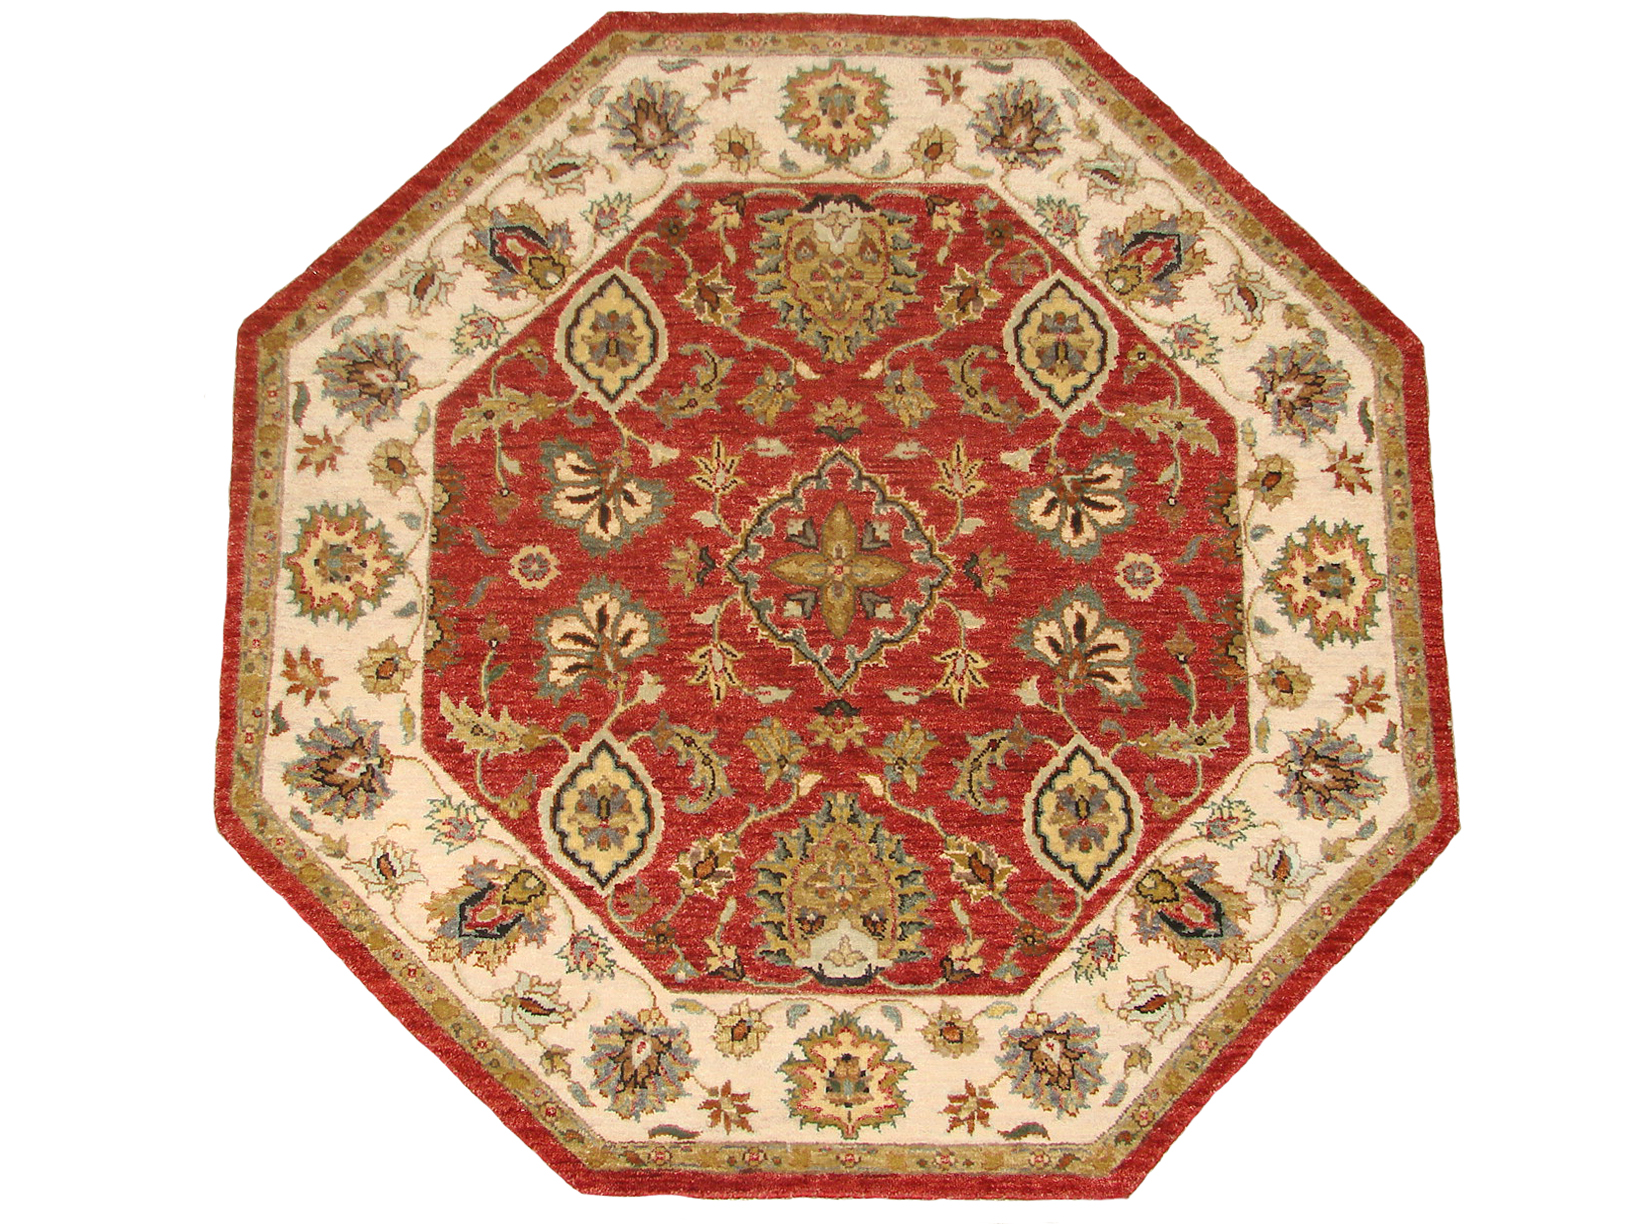 4 ft. Round & Square Traditional Hand Knotted Wool Area Rug - MR18737